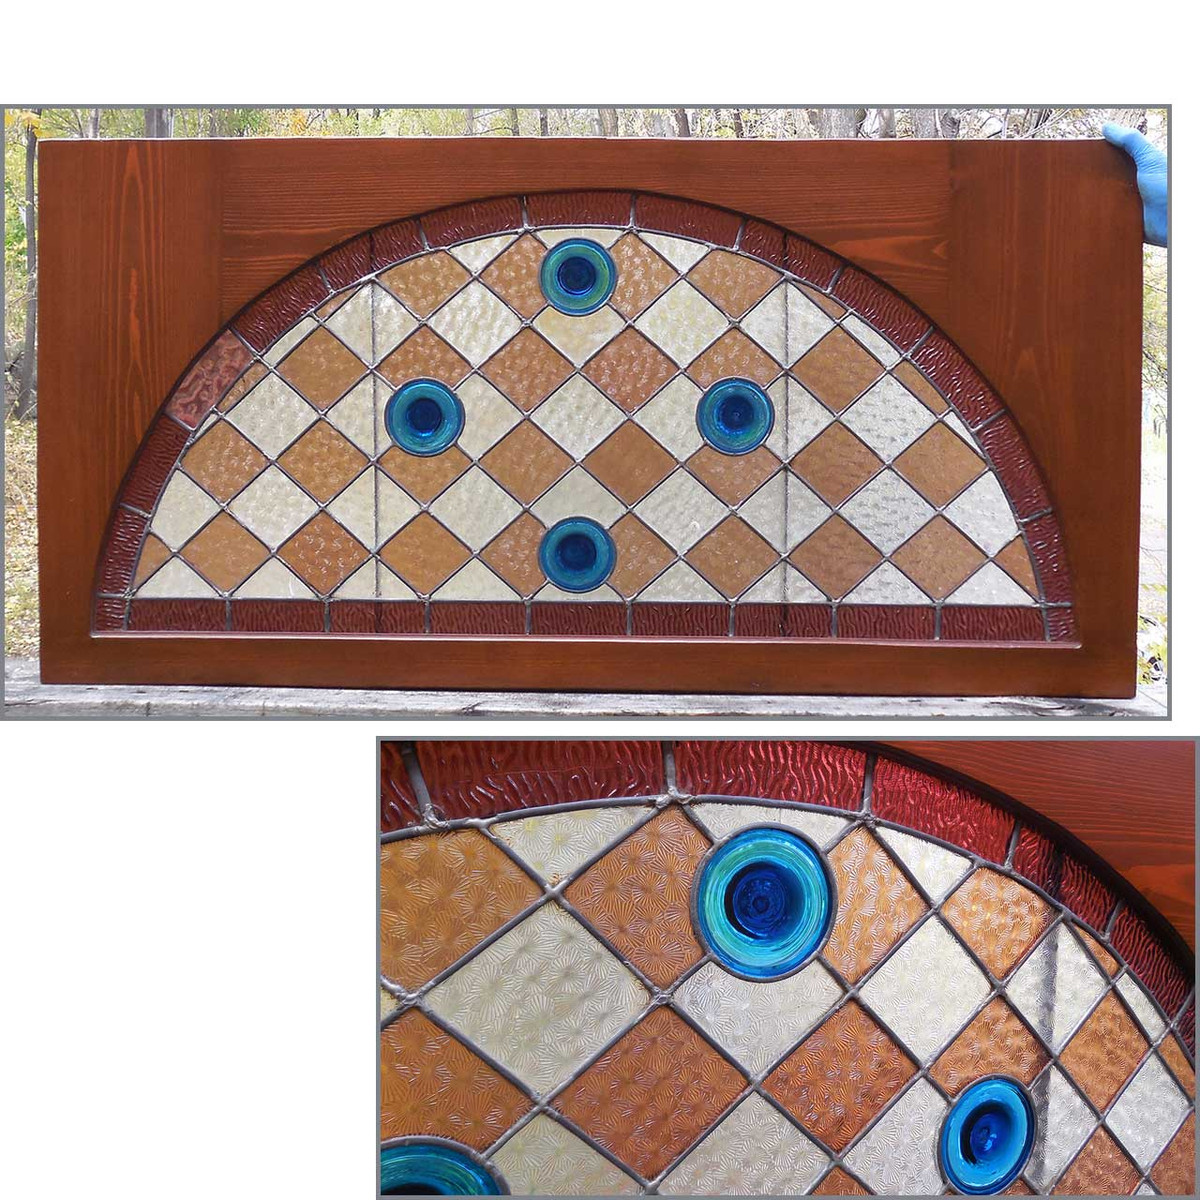 G13069 - Antique Victorian Stained Glass Window